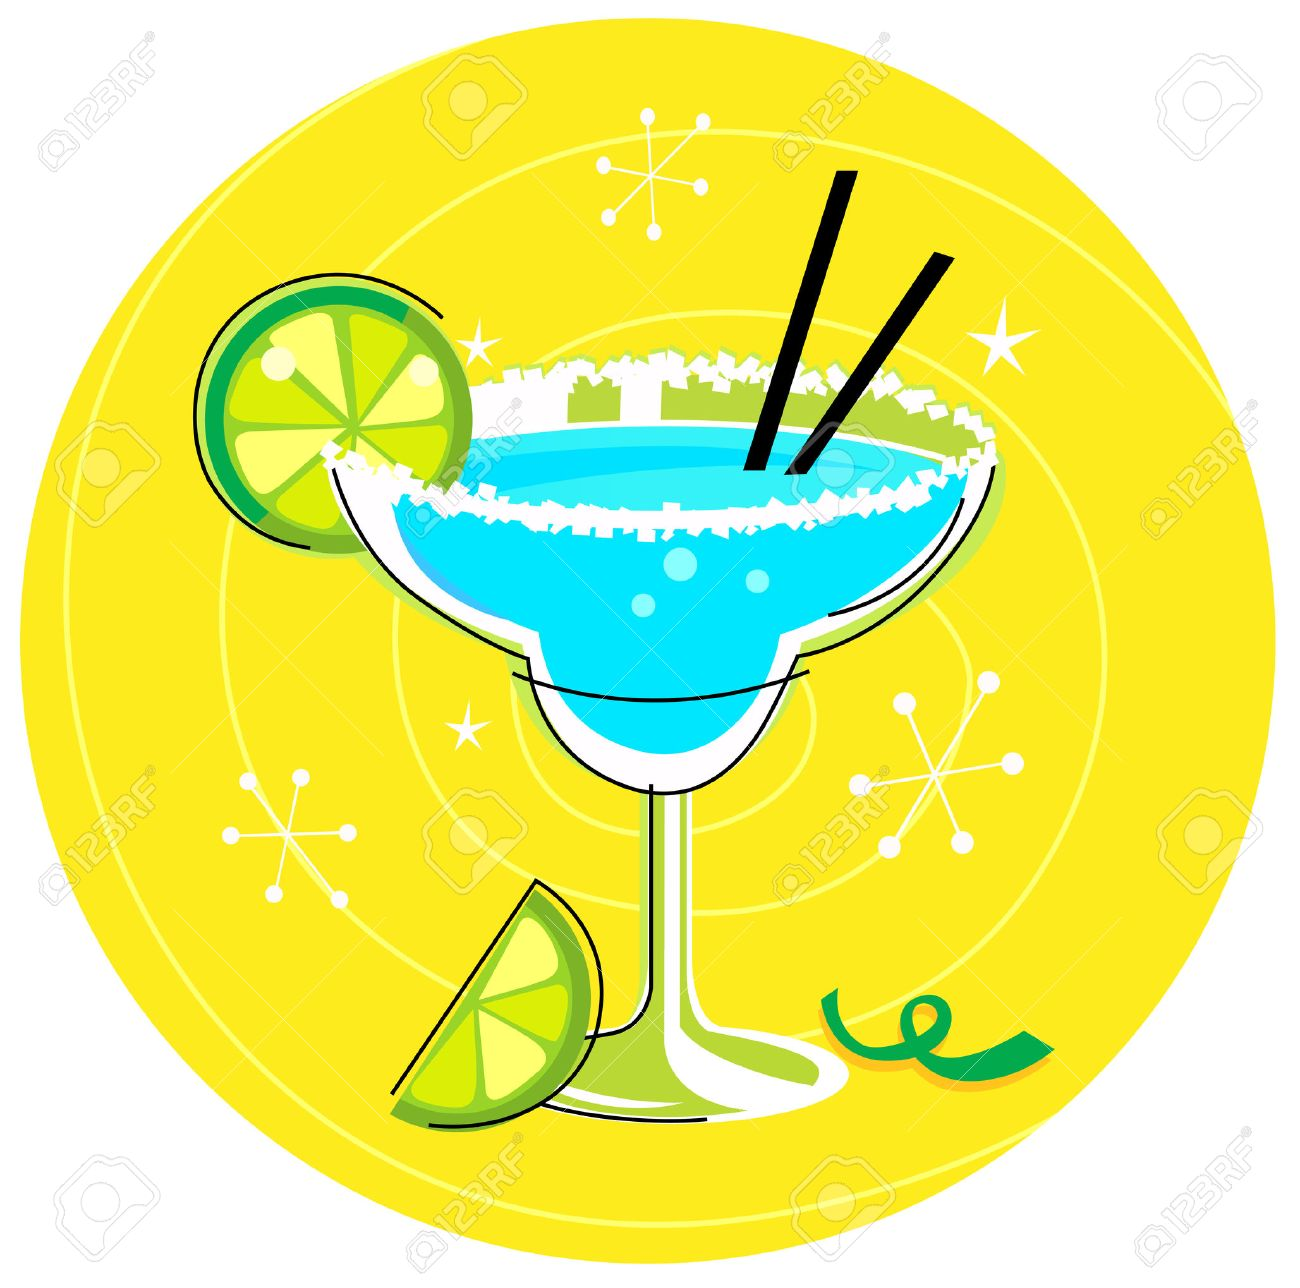 Blue Margarita: Retro cocktail icon on yellow background Stock Vector - 8098074